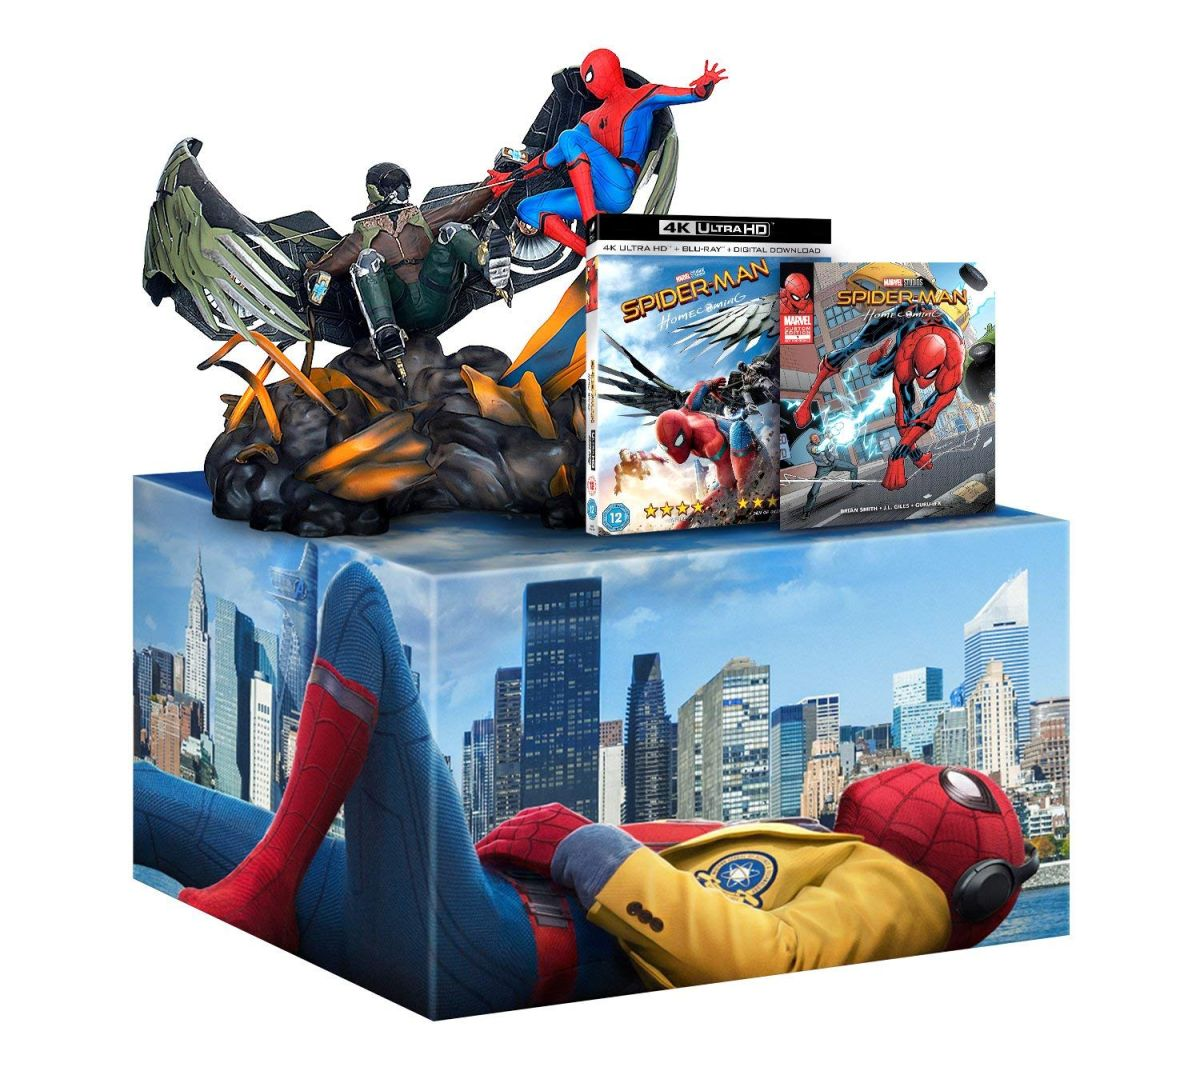 Save £110 on this Spider-Man: Homecoming statue and Blu-Ray combo at Amazon